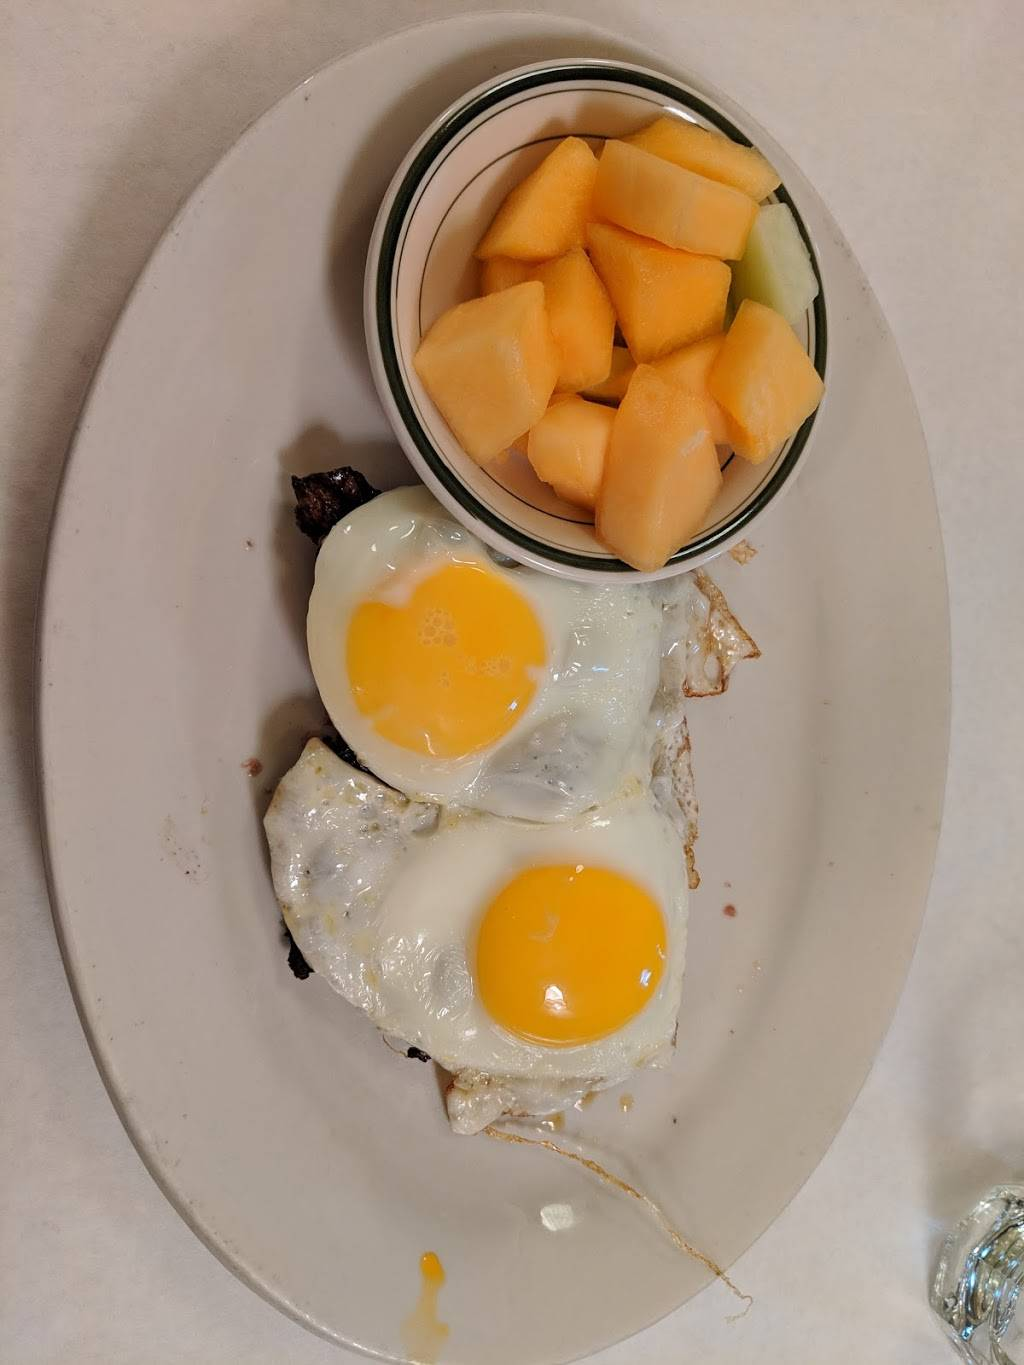 Old Johns Luncheonette | meal takeaway | 148 W 67th St, New York, NY 10023, USA | 2128742700 OR +1 212-874-2700